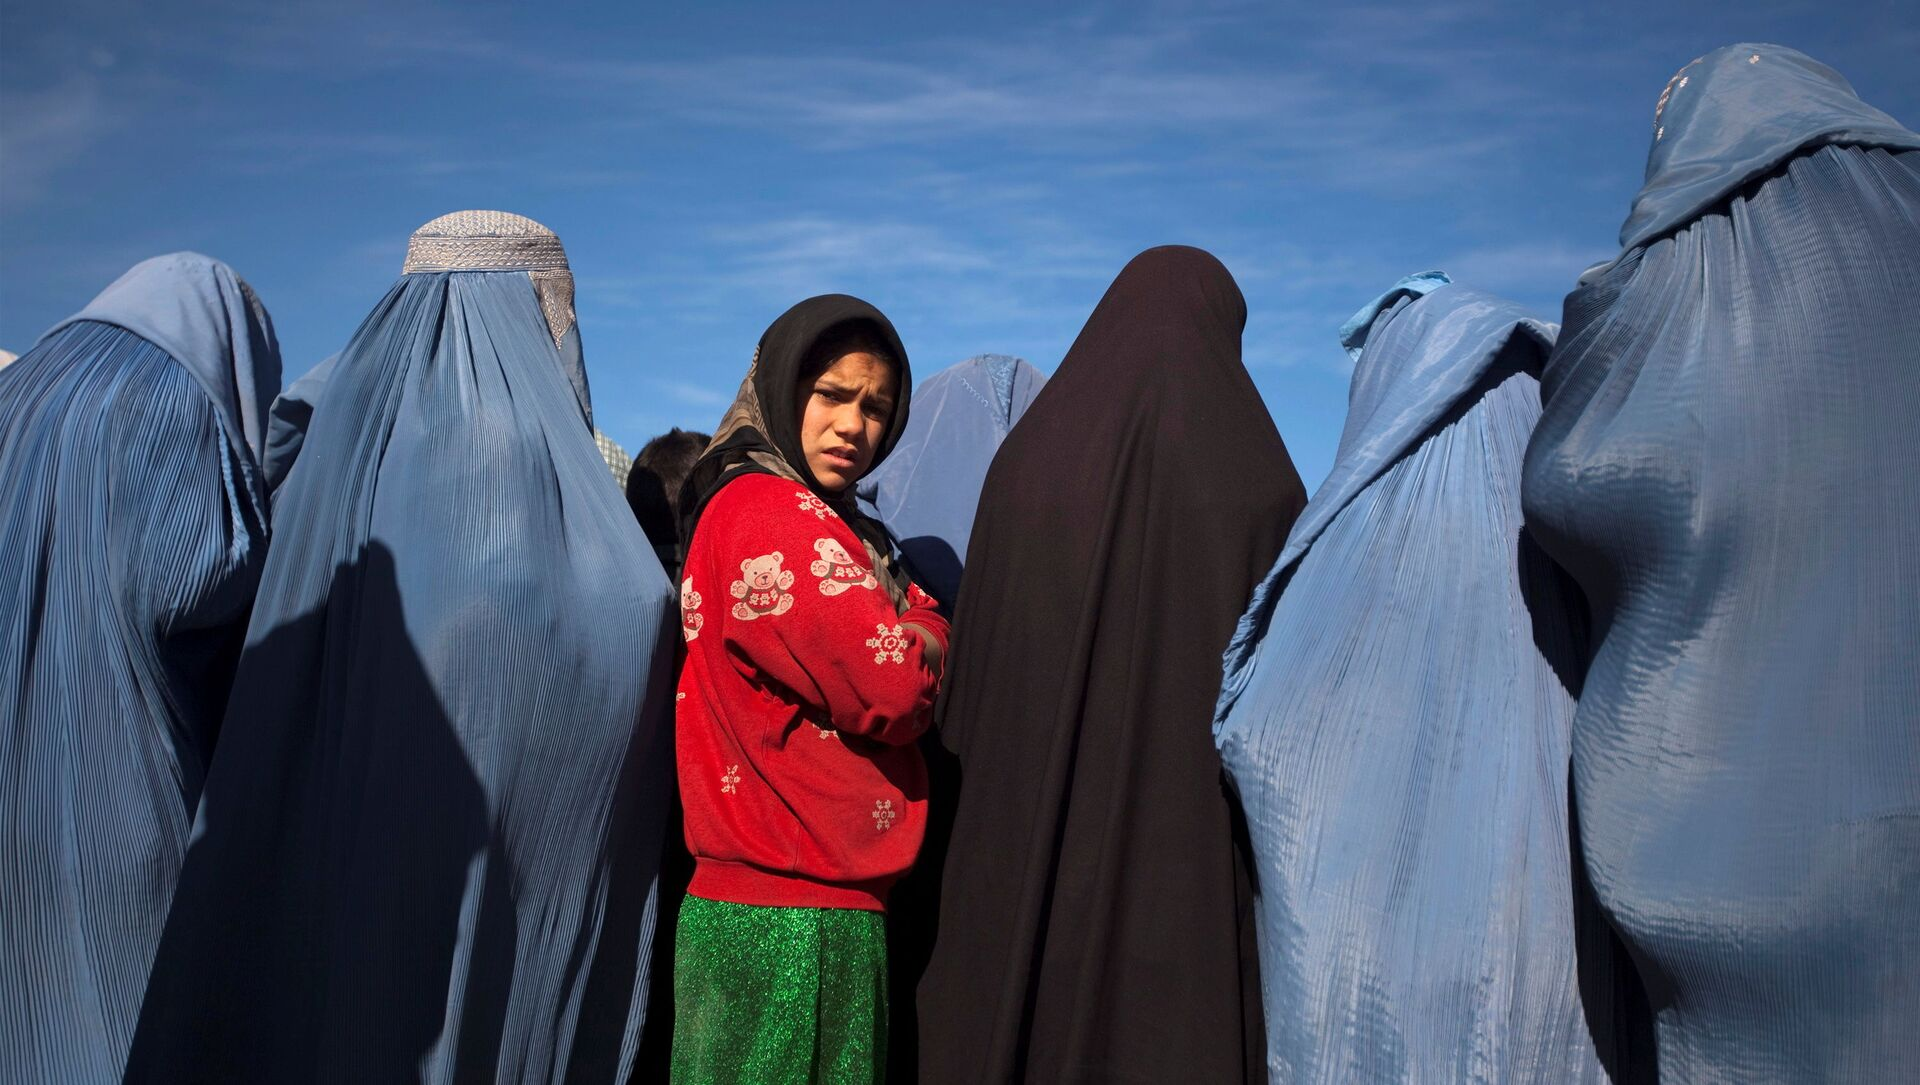 An Afghan girl stands among widows clad in burqas during a cash for work project by humanitarian organisation CARE International in Kabul, Afghanistan January 6, 2010 - Sputnik International, 1920, 27.08.2021